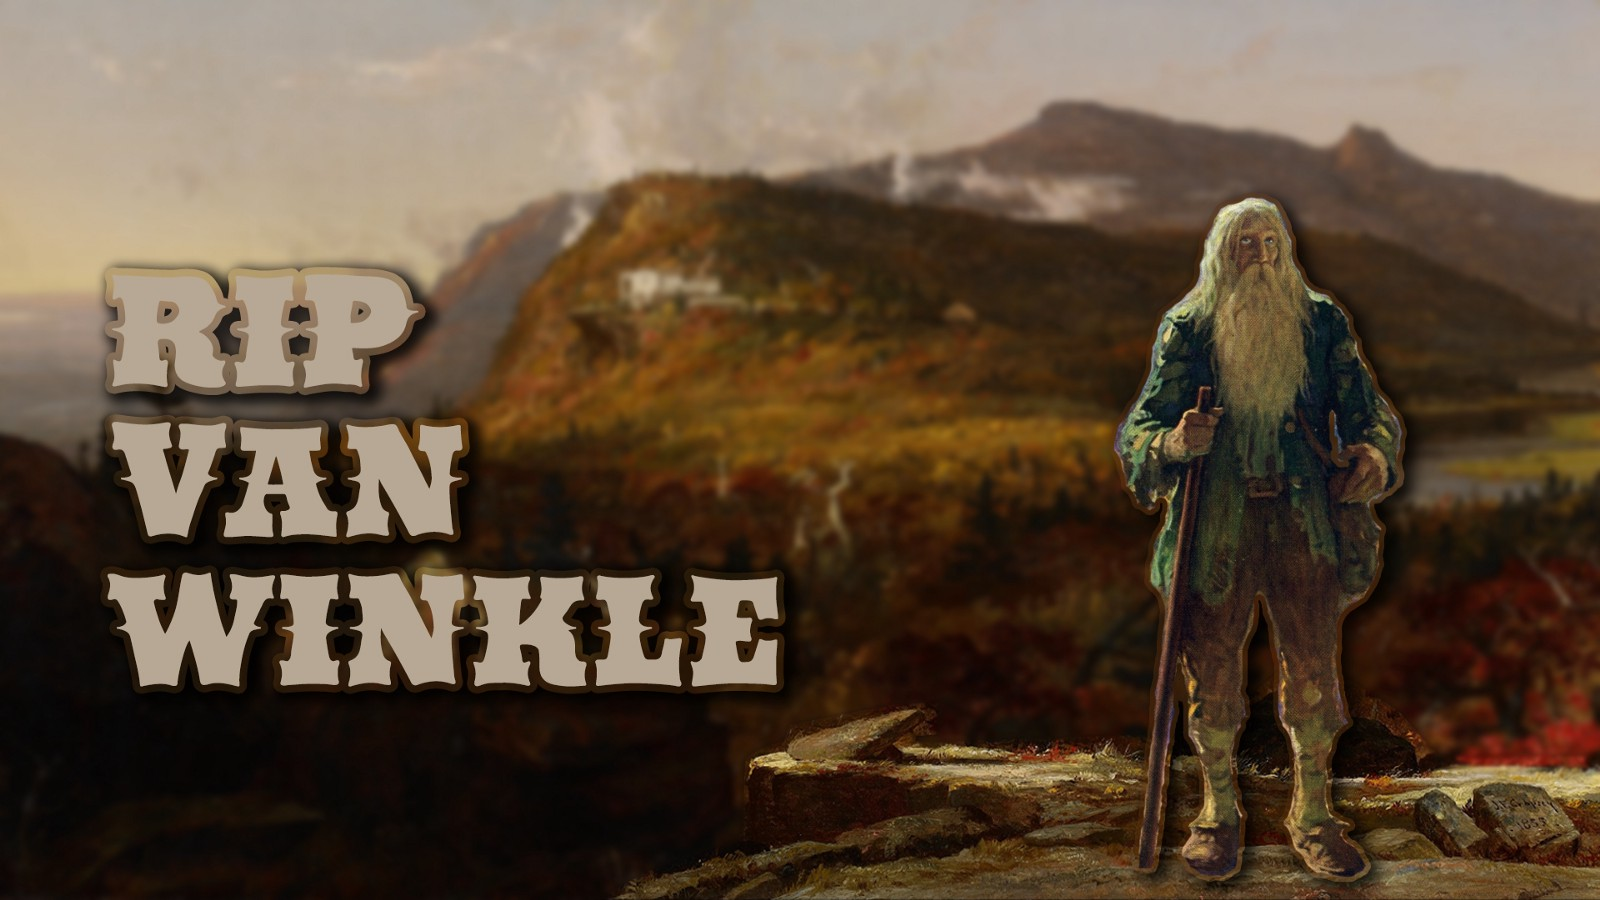 why did rip van winkle sleep for 20 years